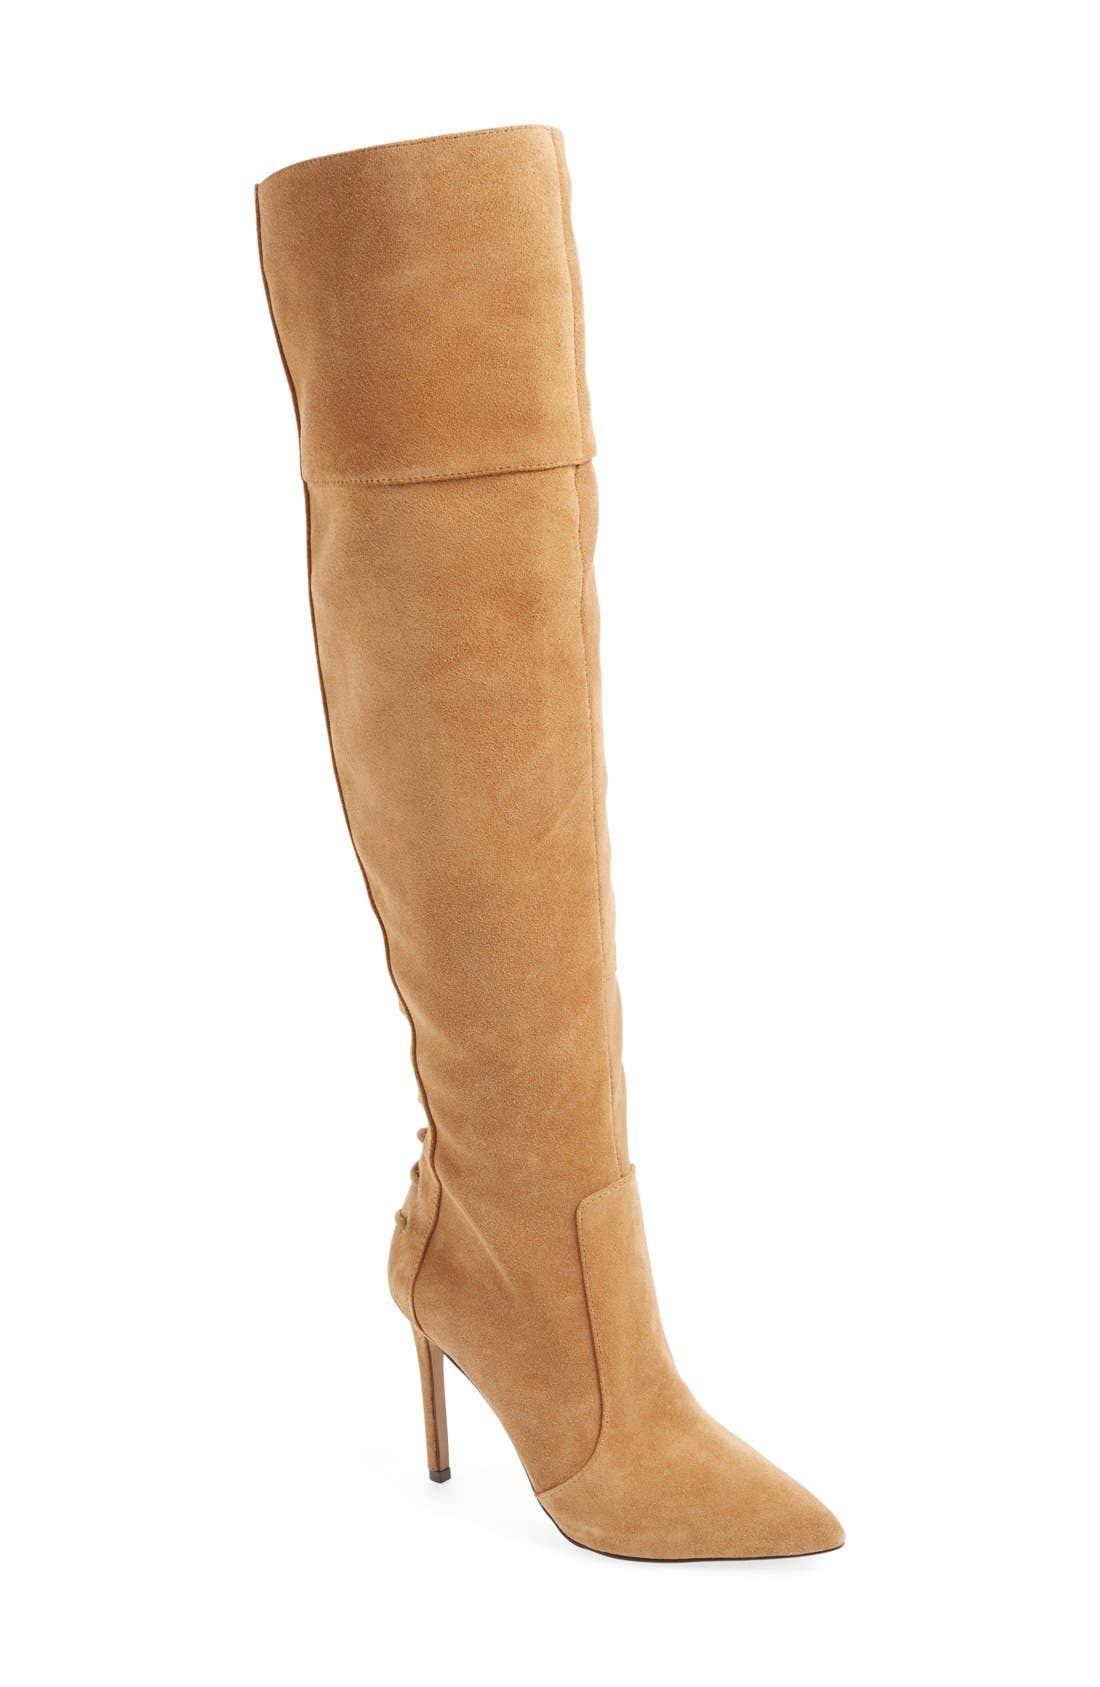 Alternate Image 1 Selected - Jessica Simpson'Parii' Over the Knee Boot (Women)